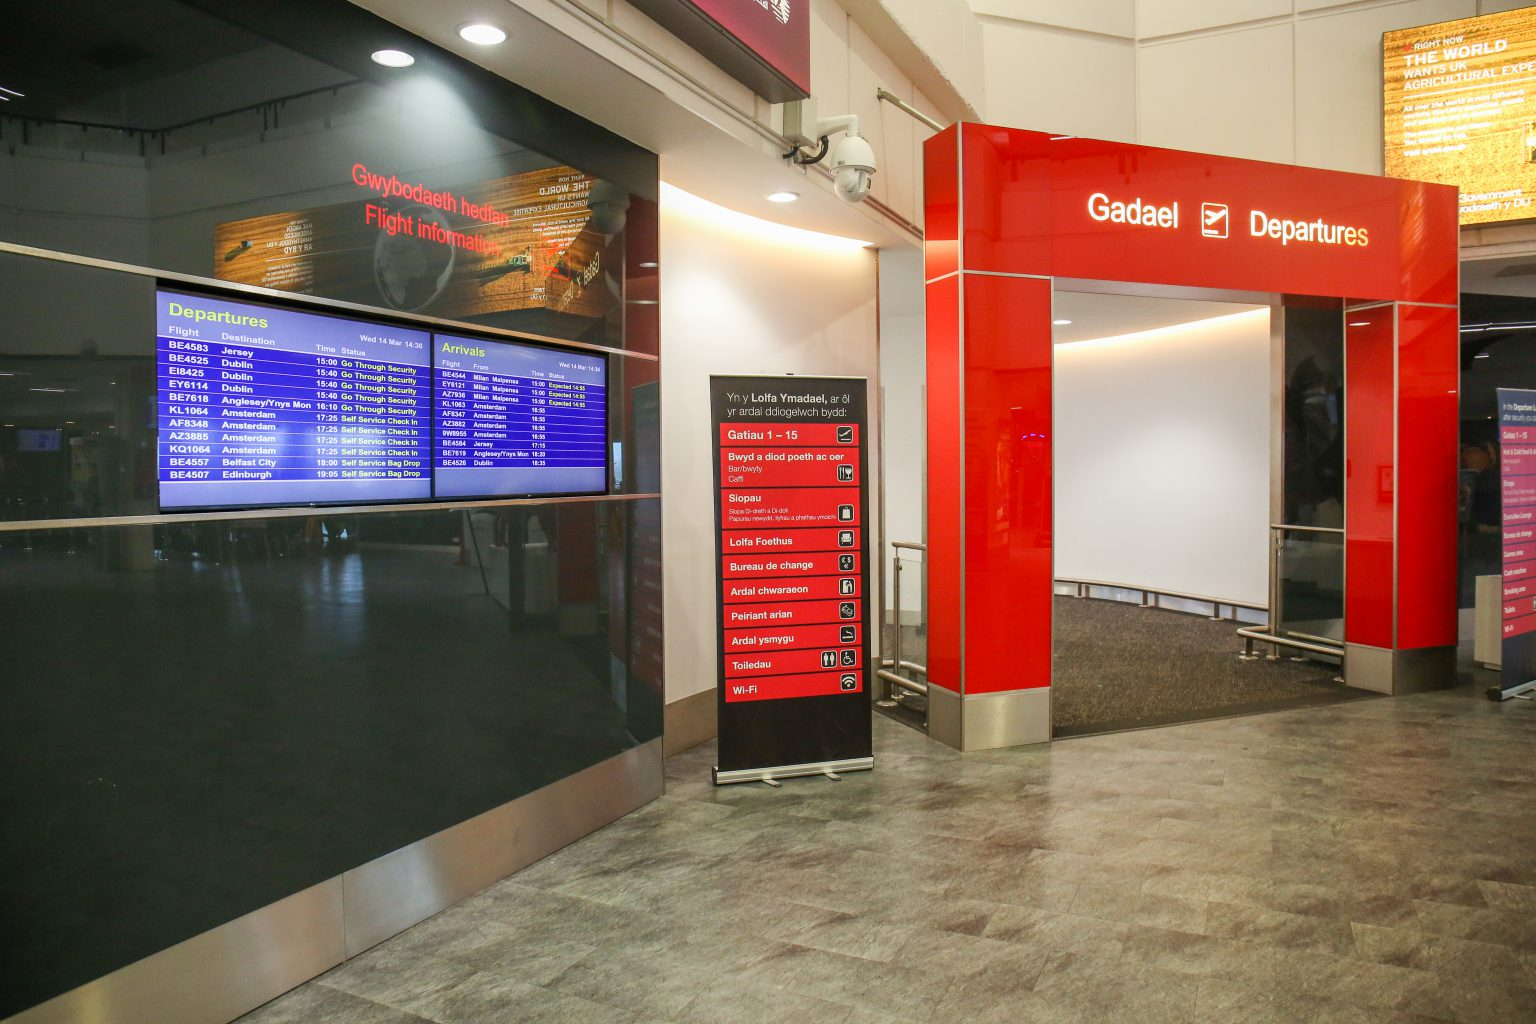 Pre-security flight information at Cardiff Airport